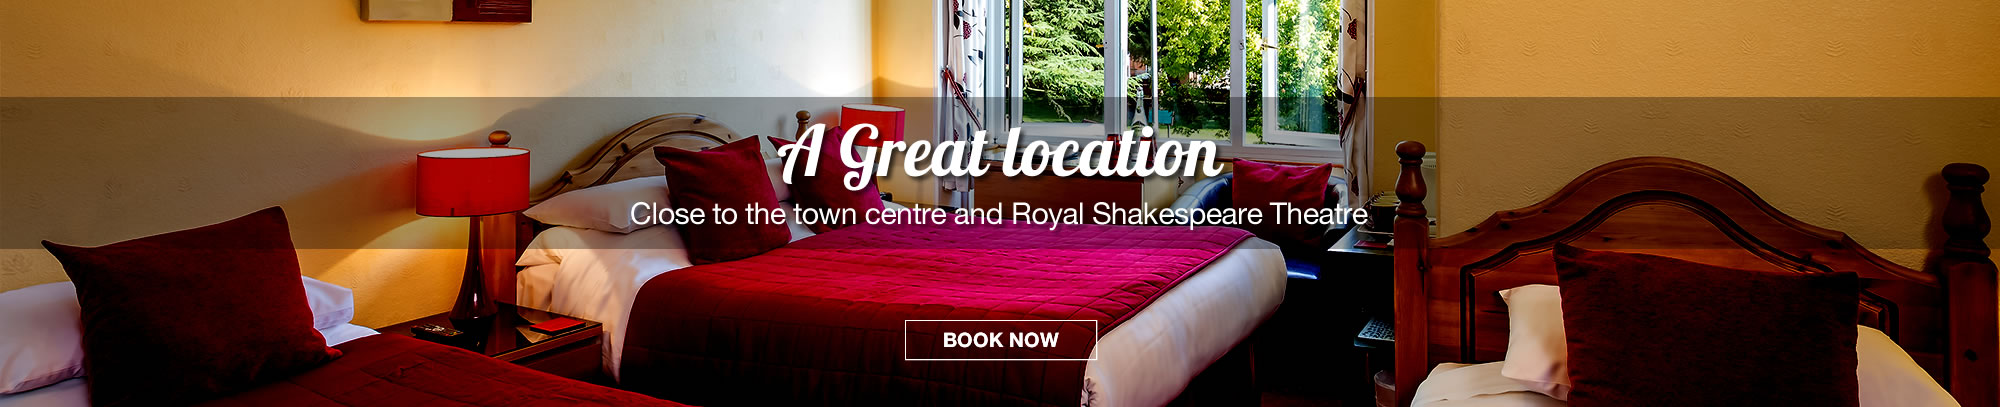 Ashgrove House - A Great location close to the town centre and Royal Shakespeare Theatre